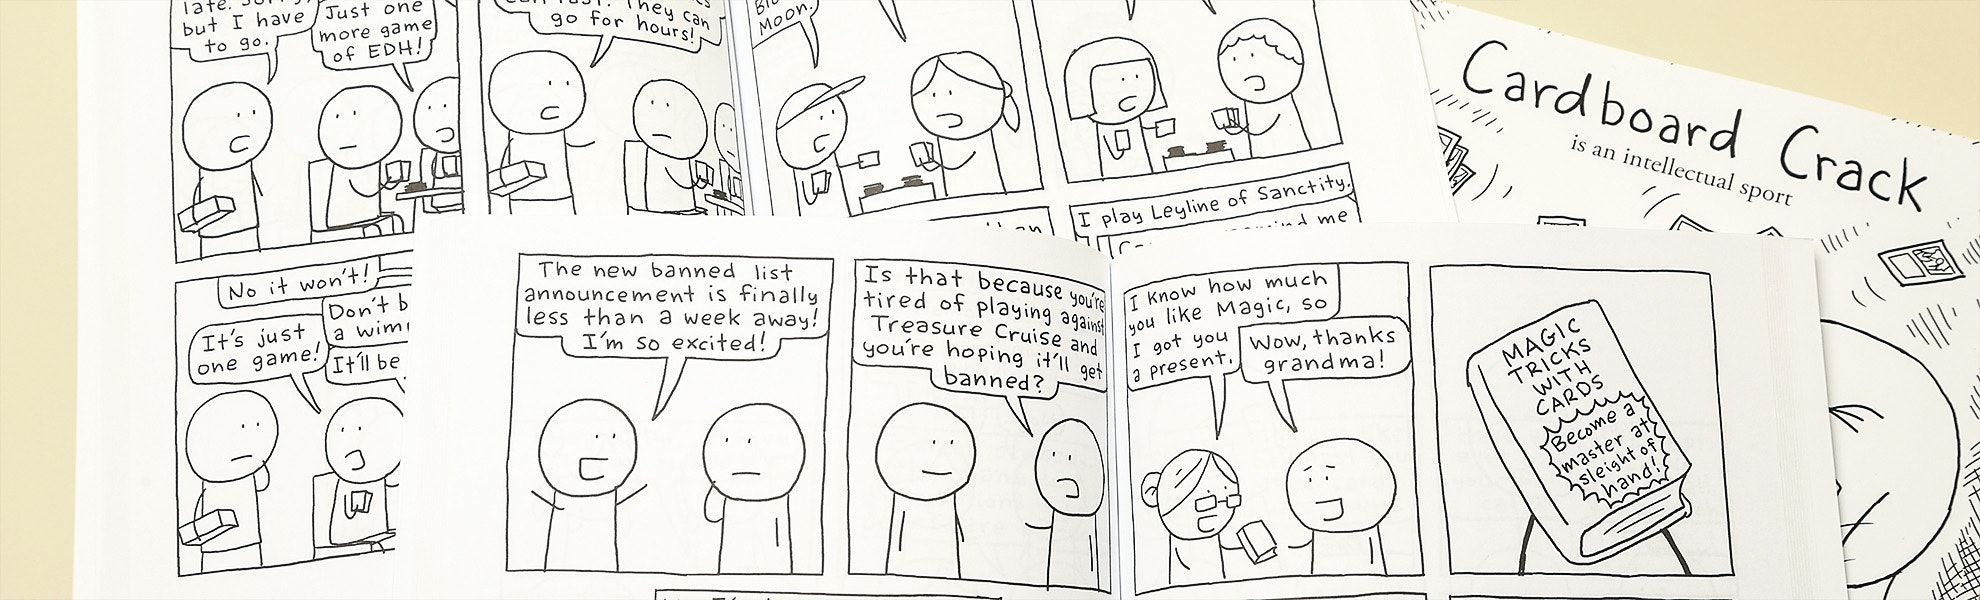 Cardboard Crack Complete Comic Collection